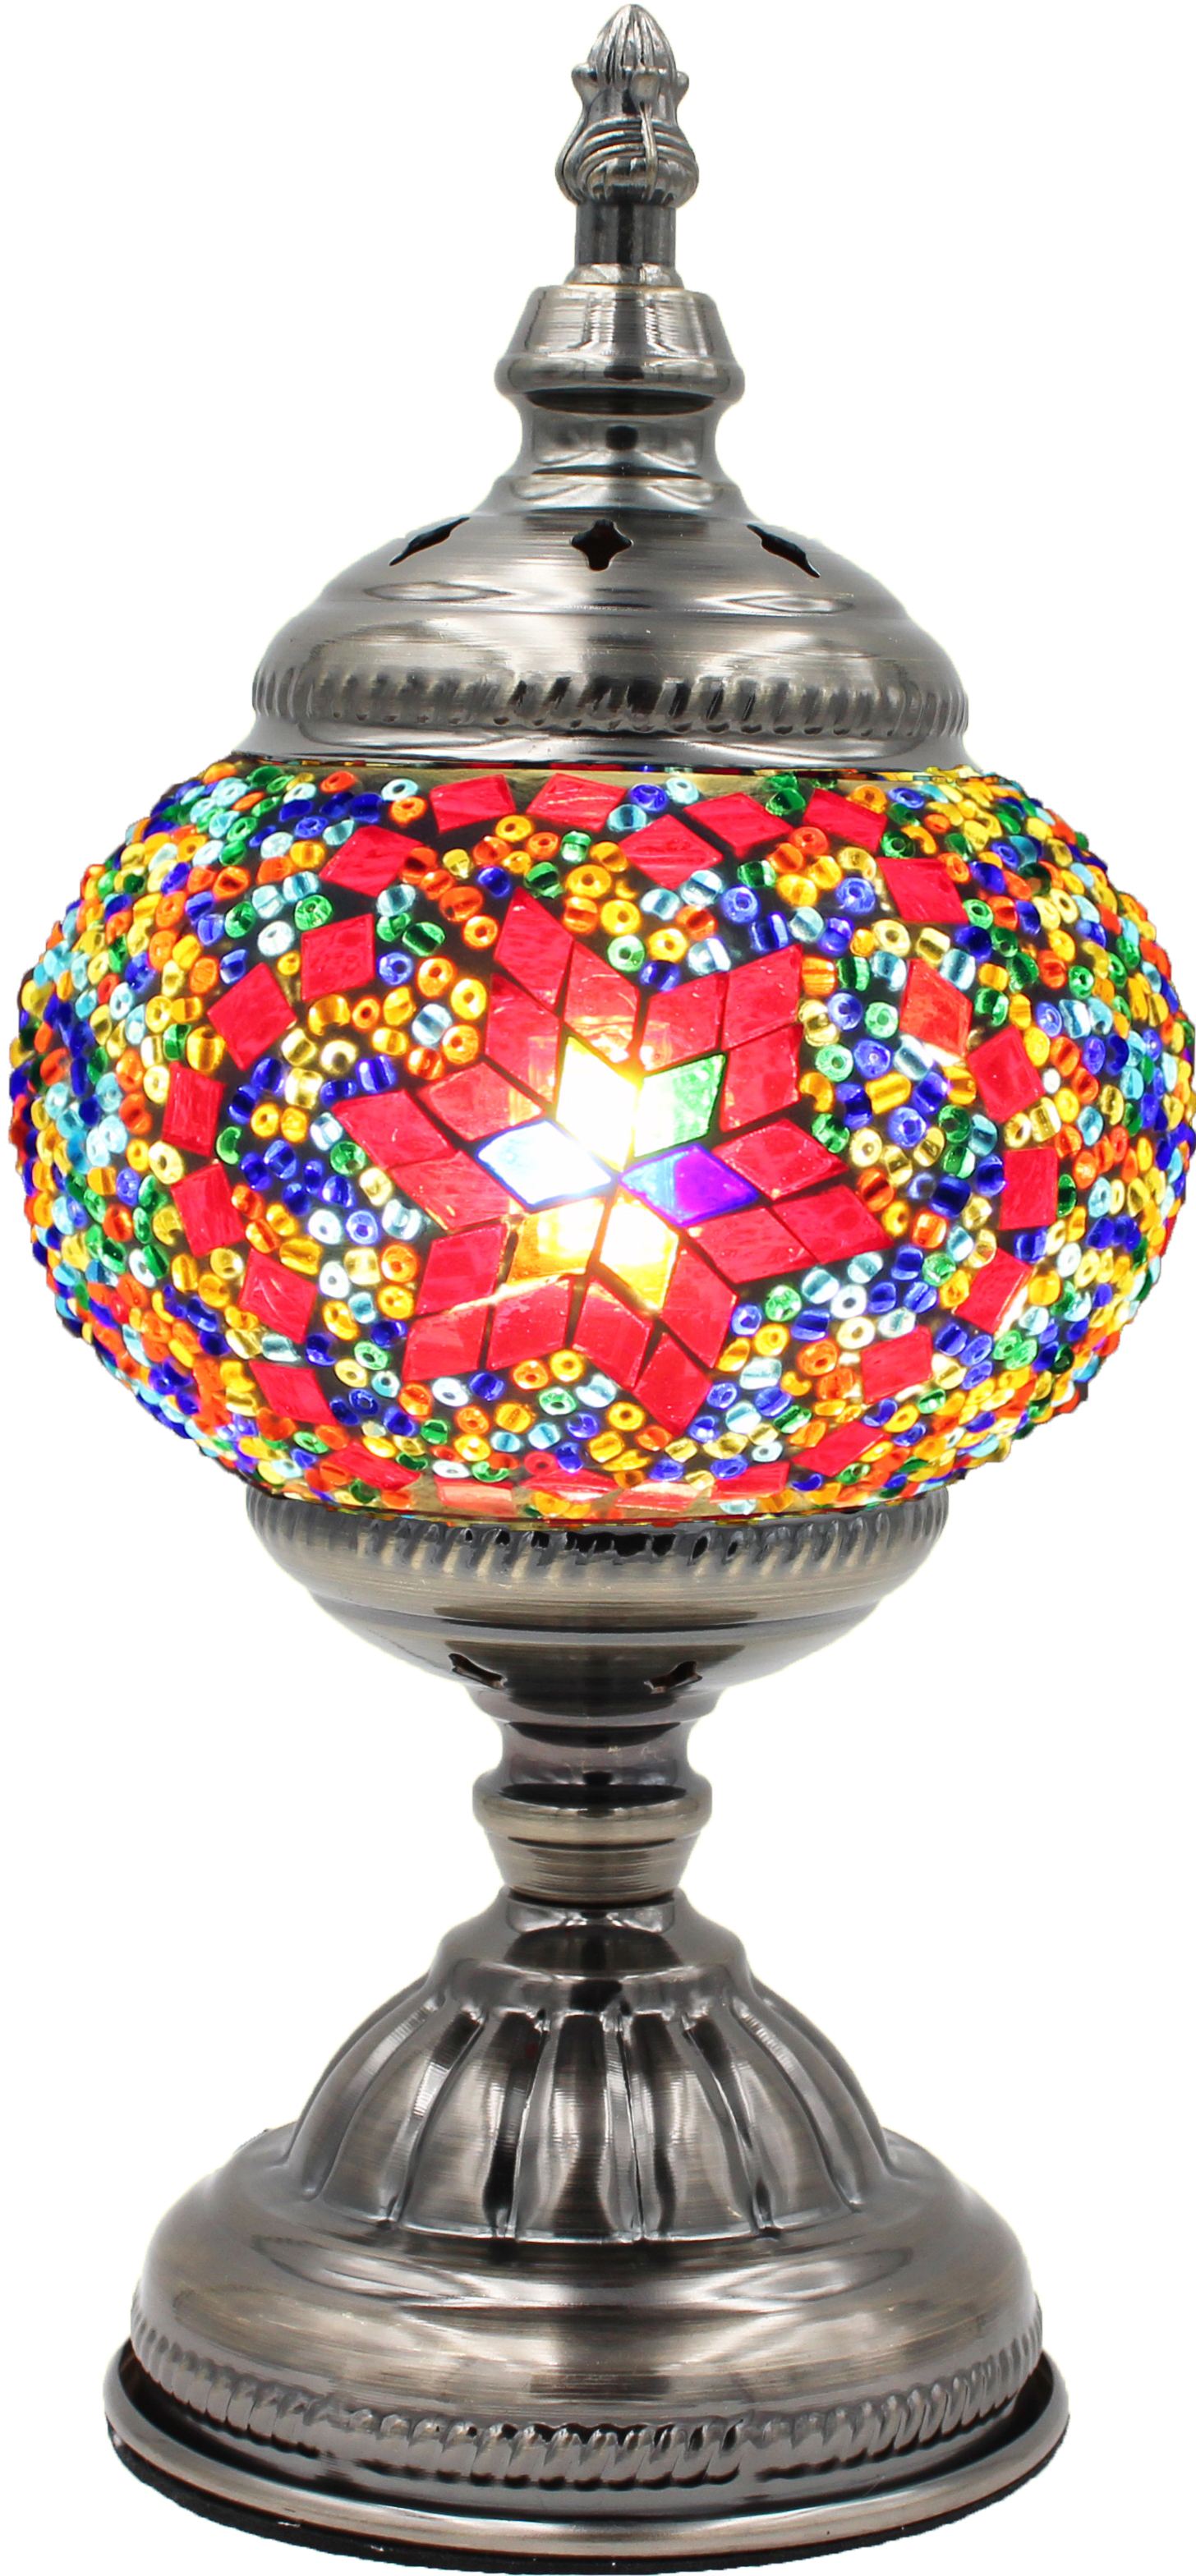 Hand Made Mosaic Glass Lamp - Without Bulb (013)